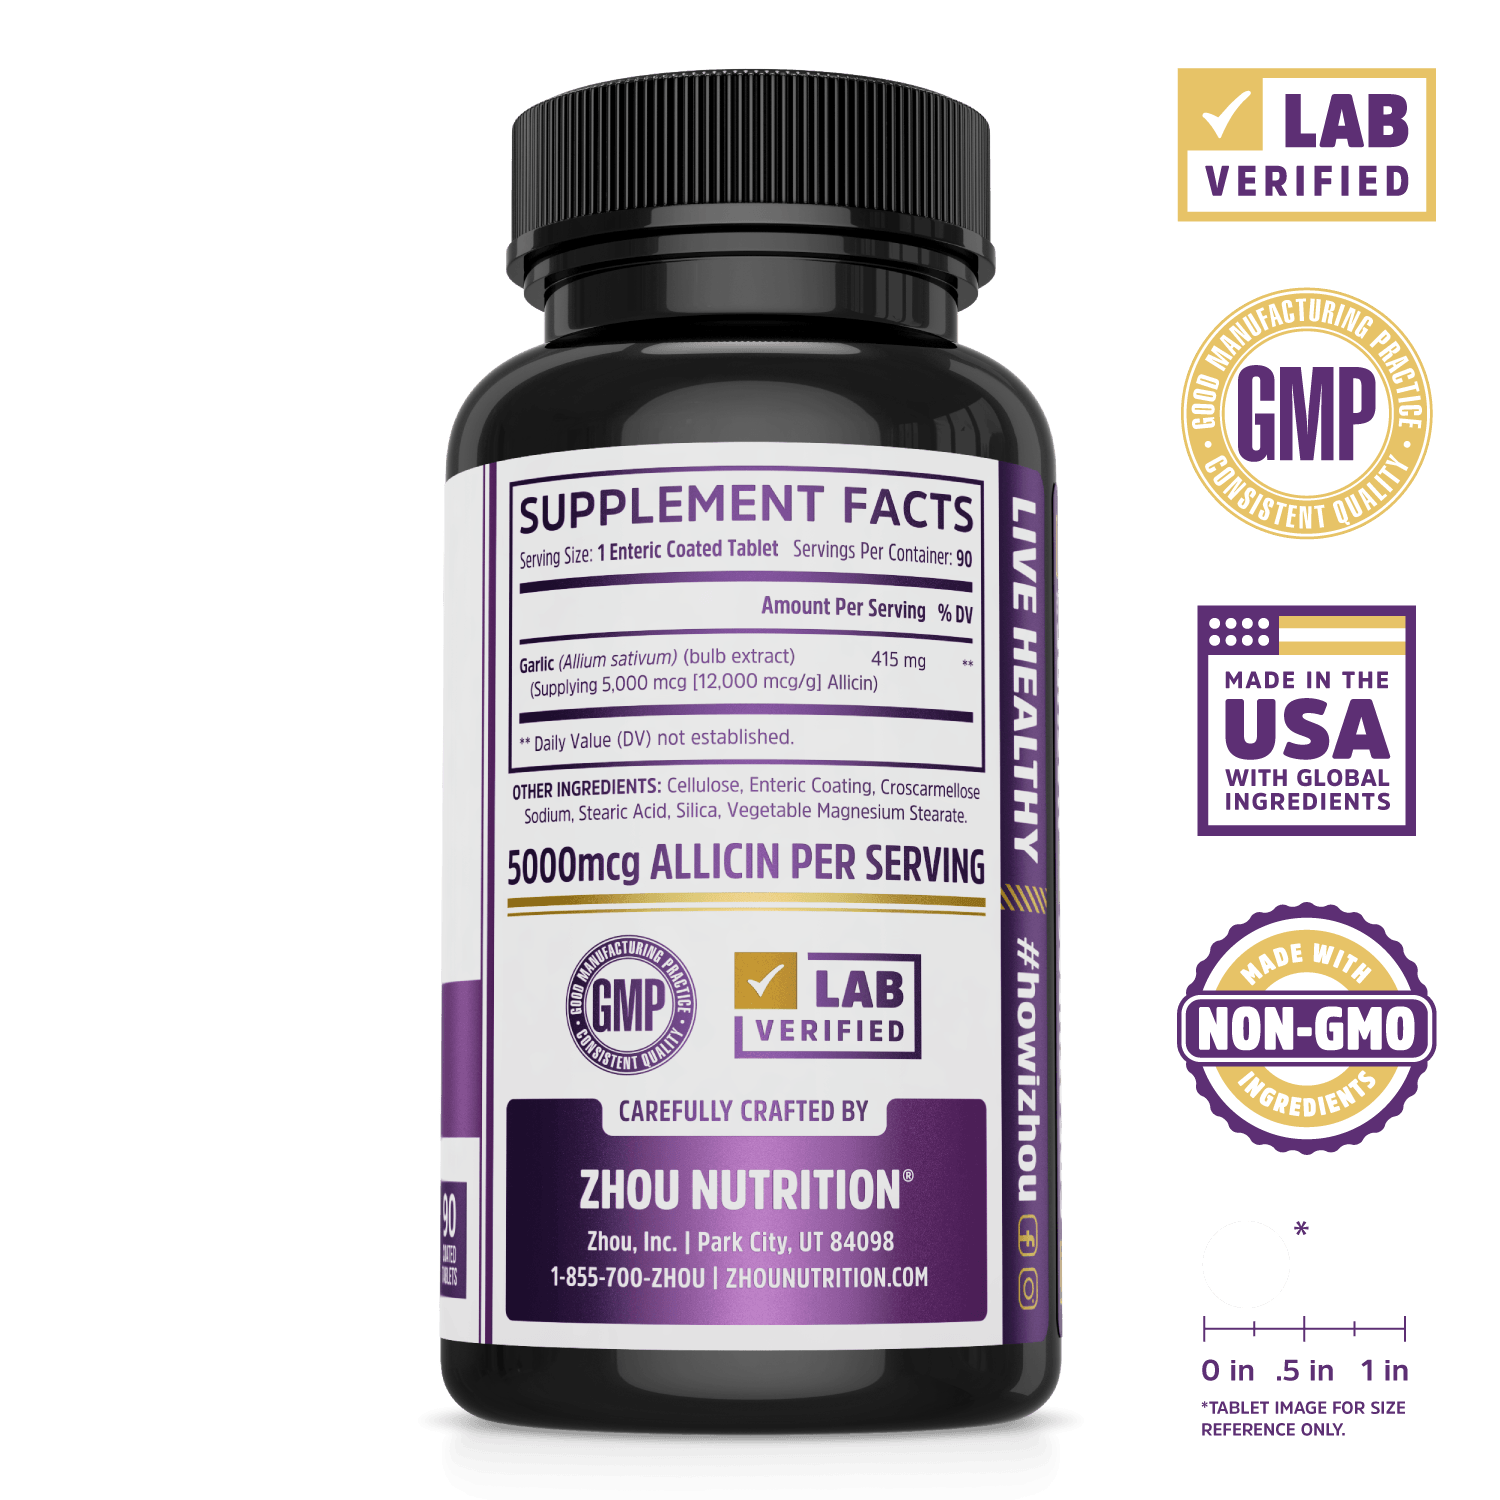 Zhou Nutrition Garlic Supplement with Allicin. Lab verified, good manufacturing practices, made in the USA with global ingredients, made with non-GMO ingredients